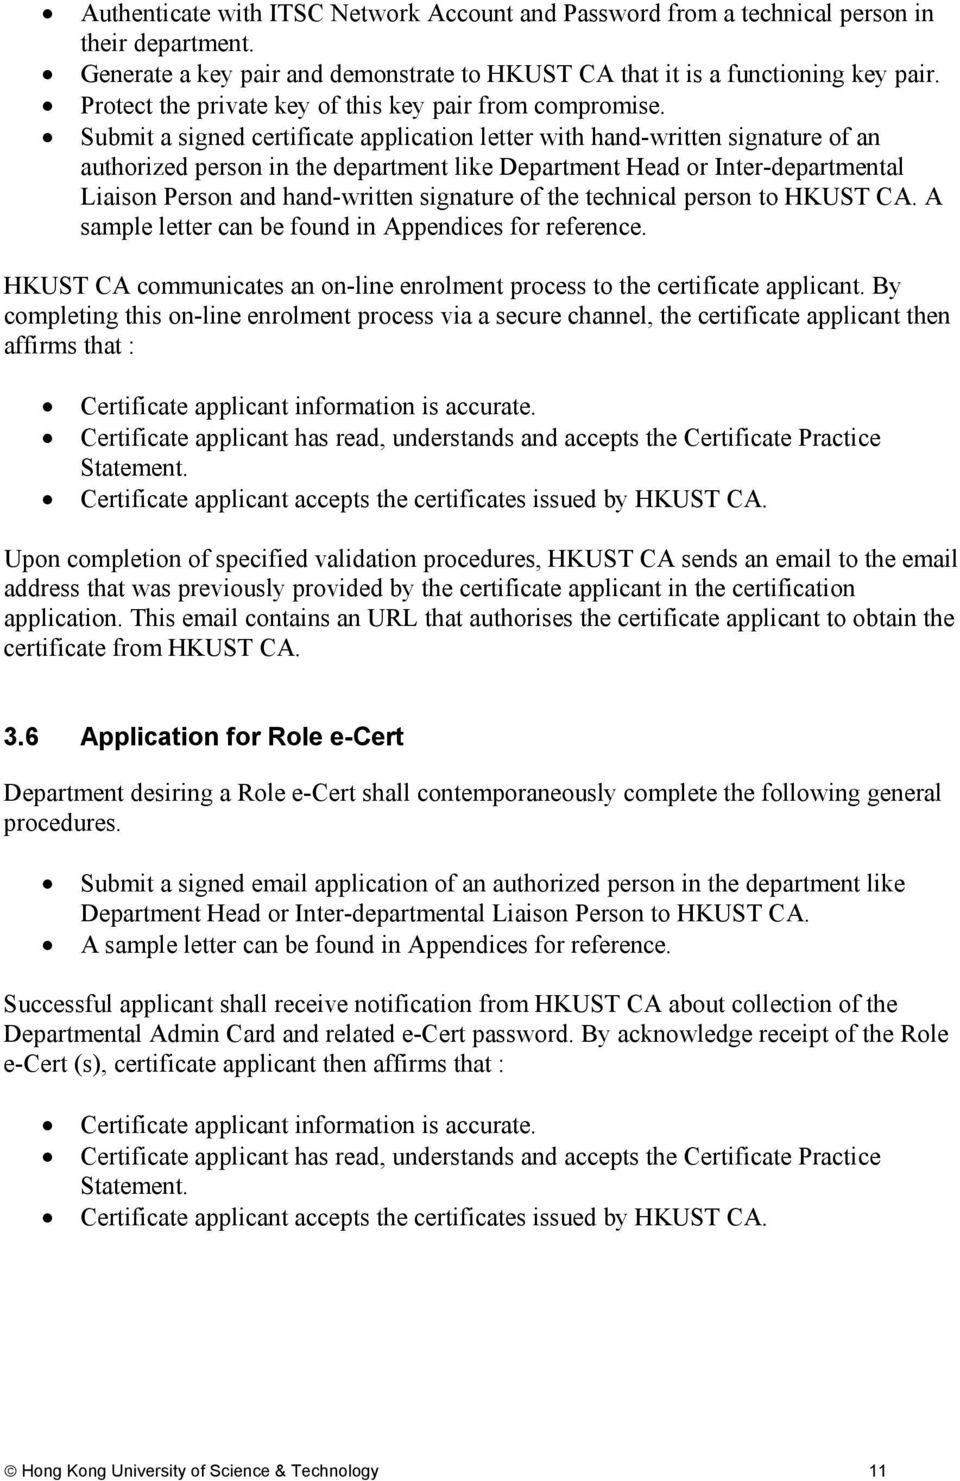 Submit a signed certificate application letter with hand-written signature of an authorized person in the department like Department Head or Inter-departmental Liaison Person and hand-written